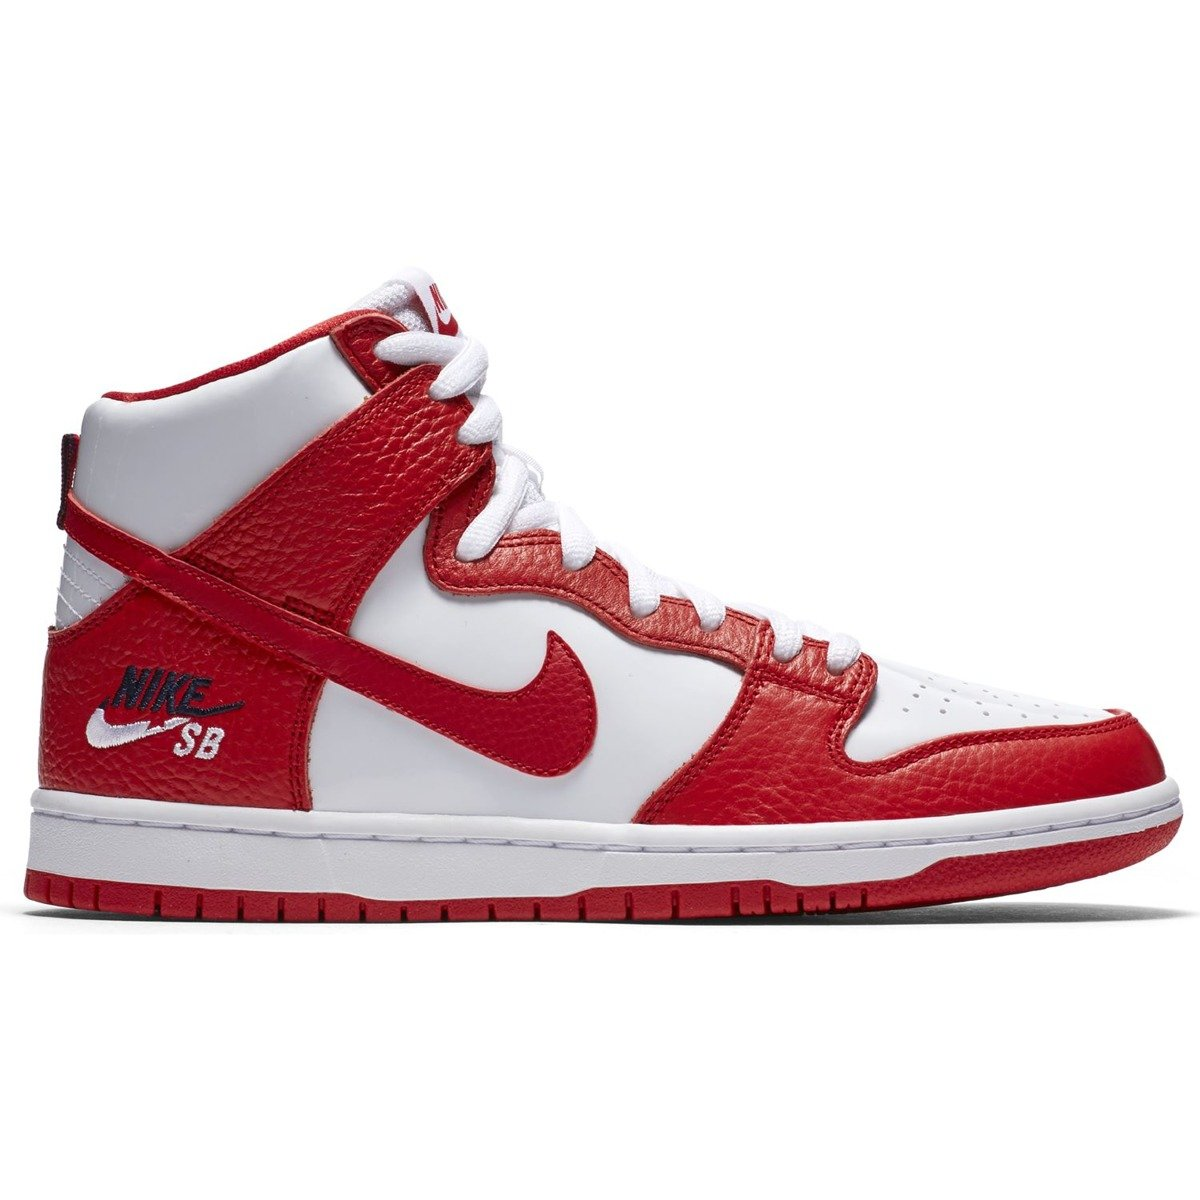 online store e4bba d8b5d shoes nike sb zoom dunk high university reduniversity red-white red   Shoes  Nike SB SALE  Sale 50% -70%  Shoes Brands  Nike SB Buty  Nike SB   Nike ...